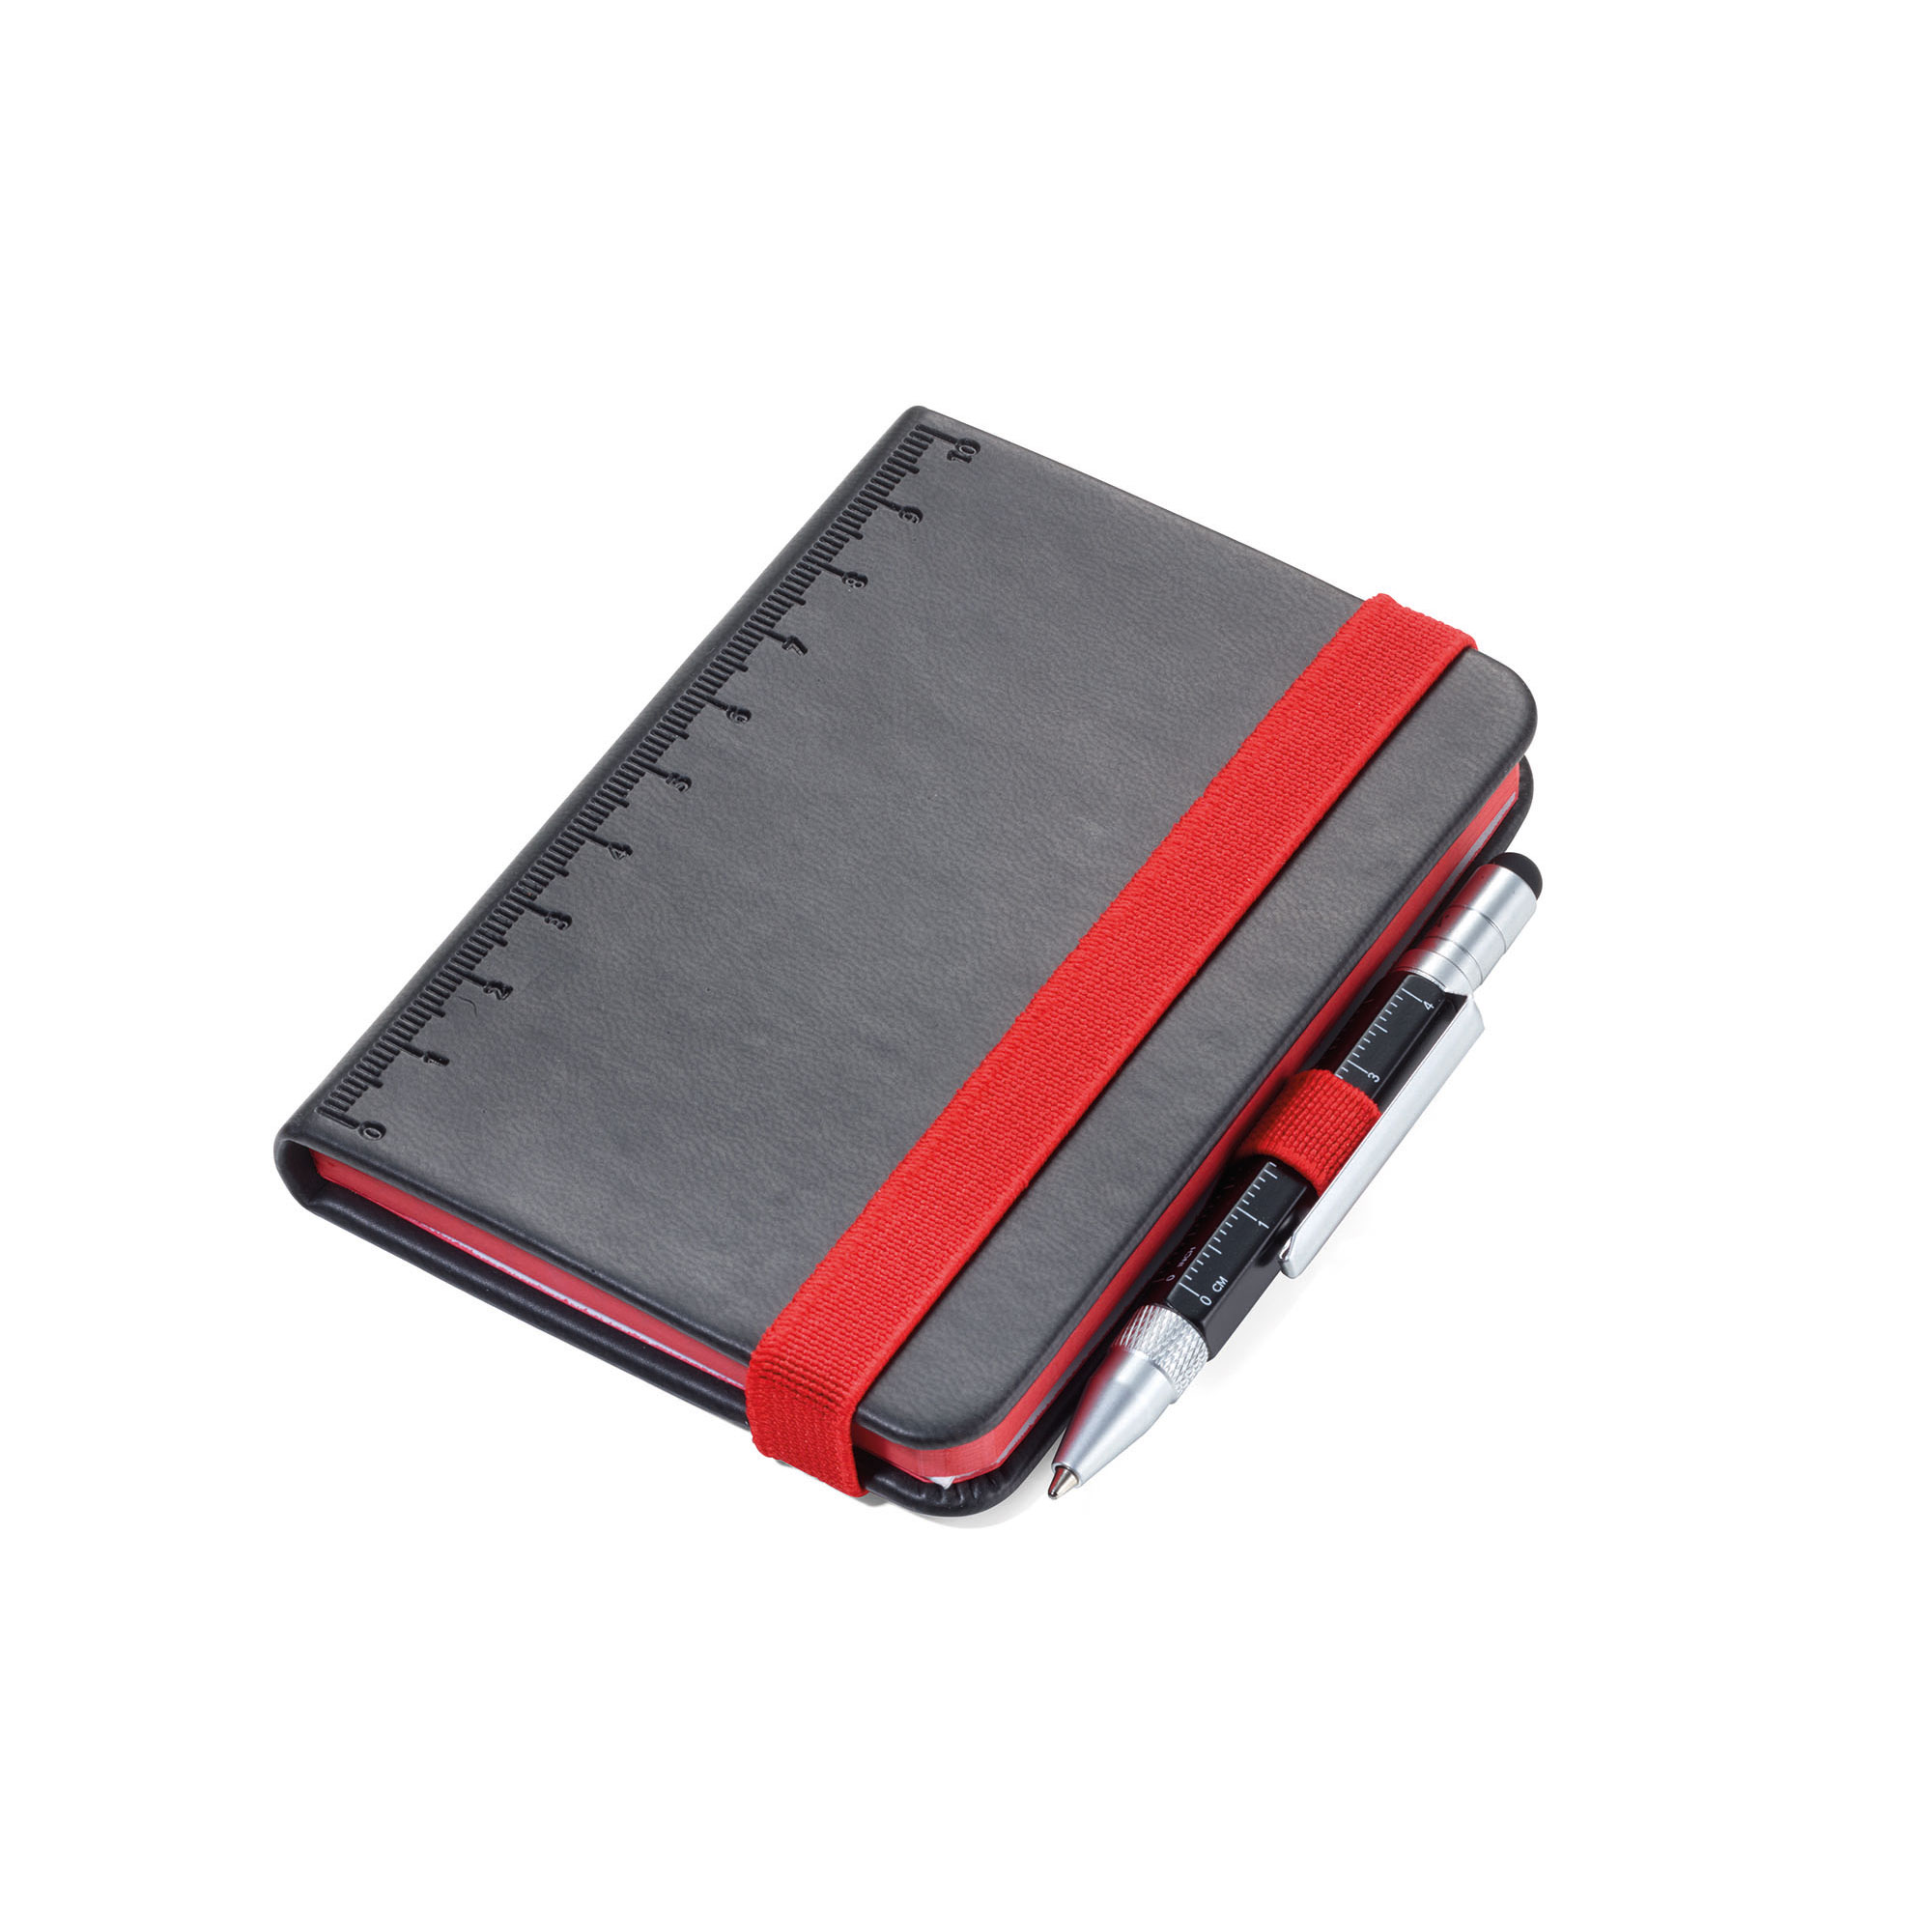 Troika Lilipad and Liliput Mini Notebook and Pen Black/Red